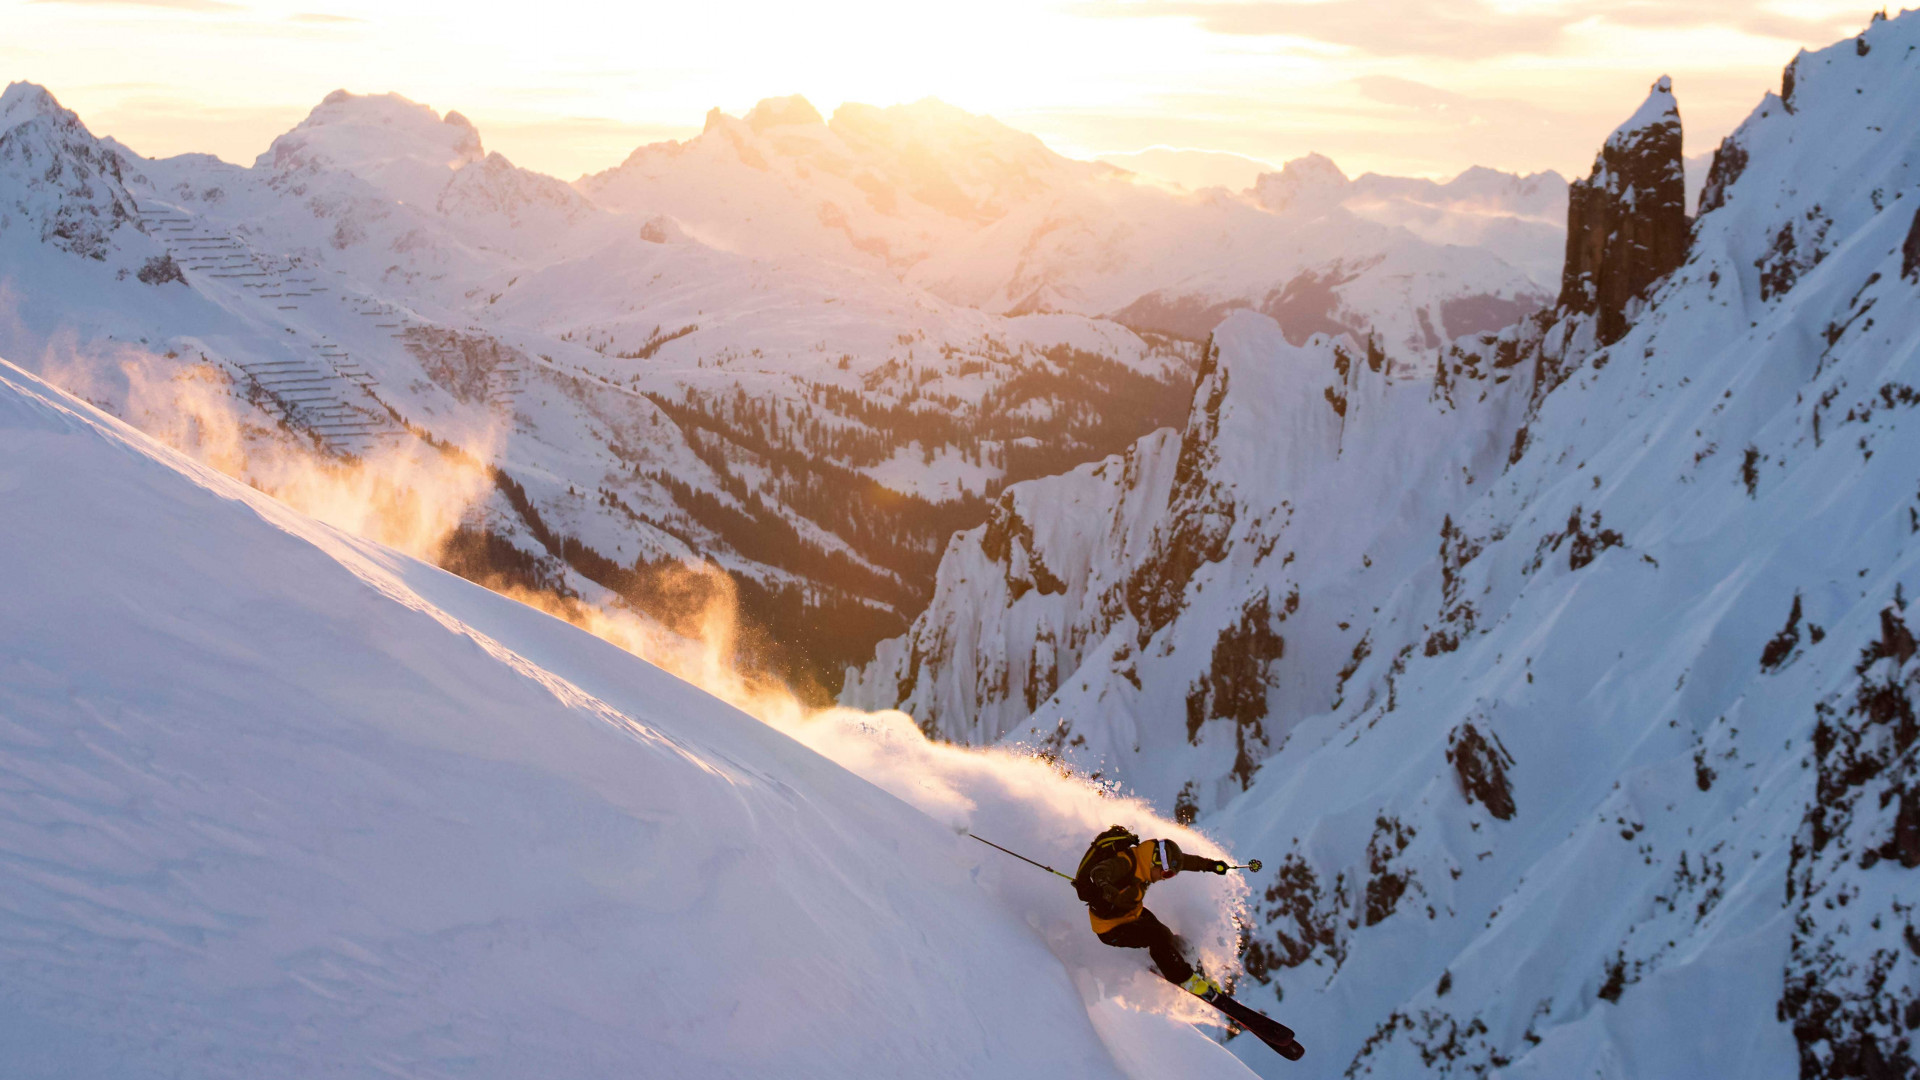 Off piste skiier in Arlberg, Austria